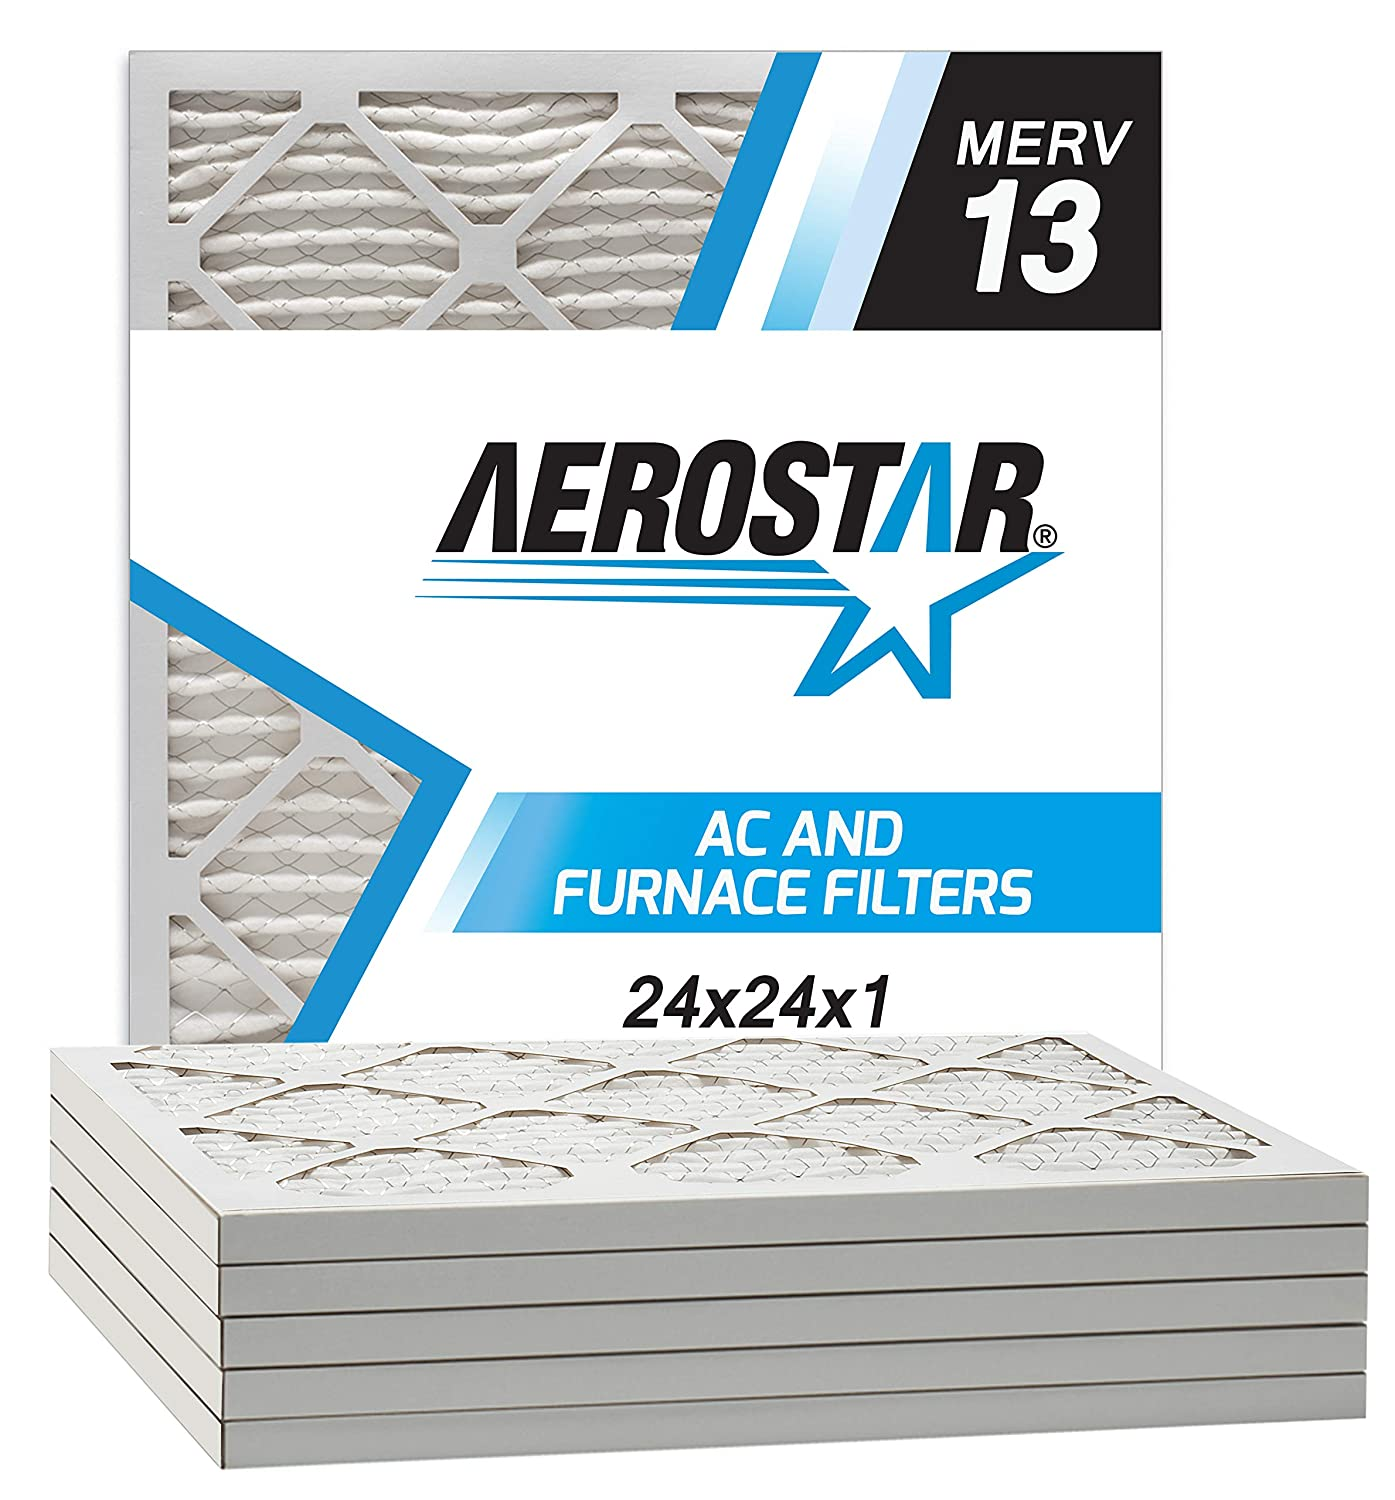 4. Aerostar 24x24x1 MERV 13 Pleated Air Filter, Made in the USA, 6-Pack